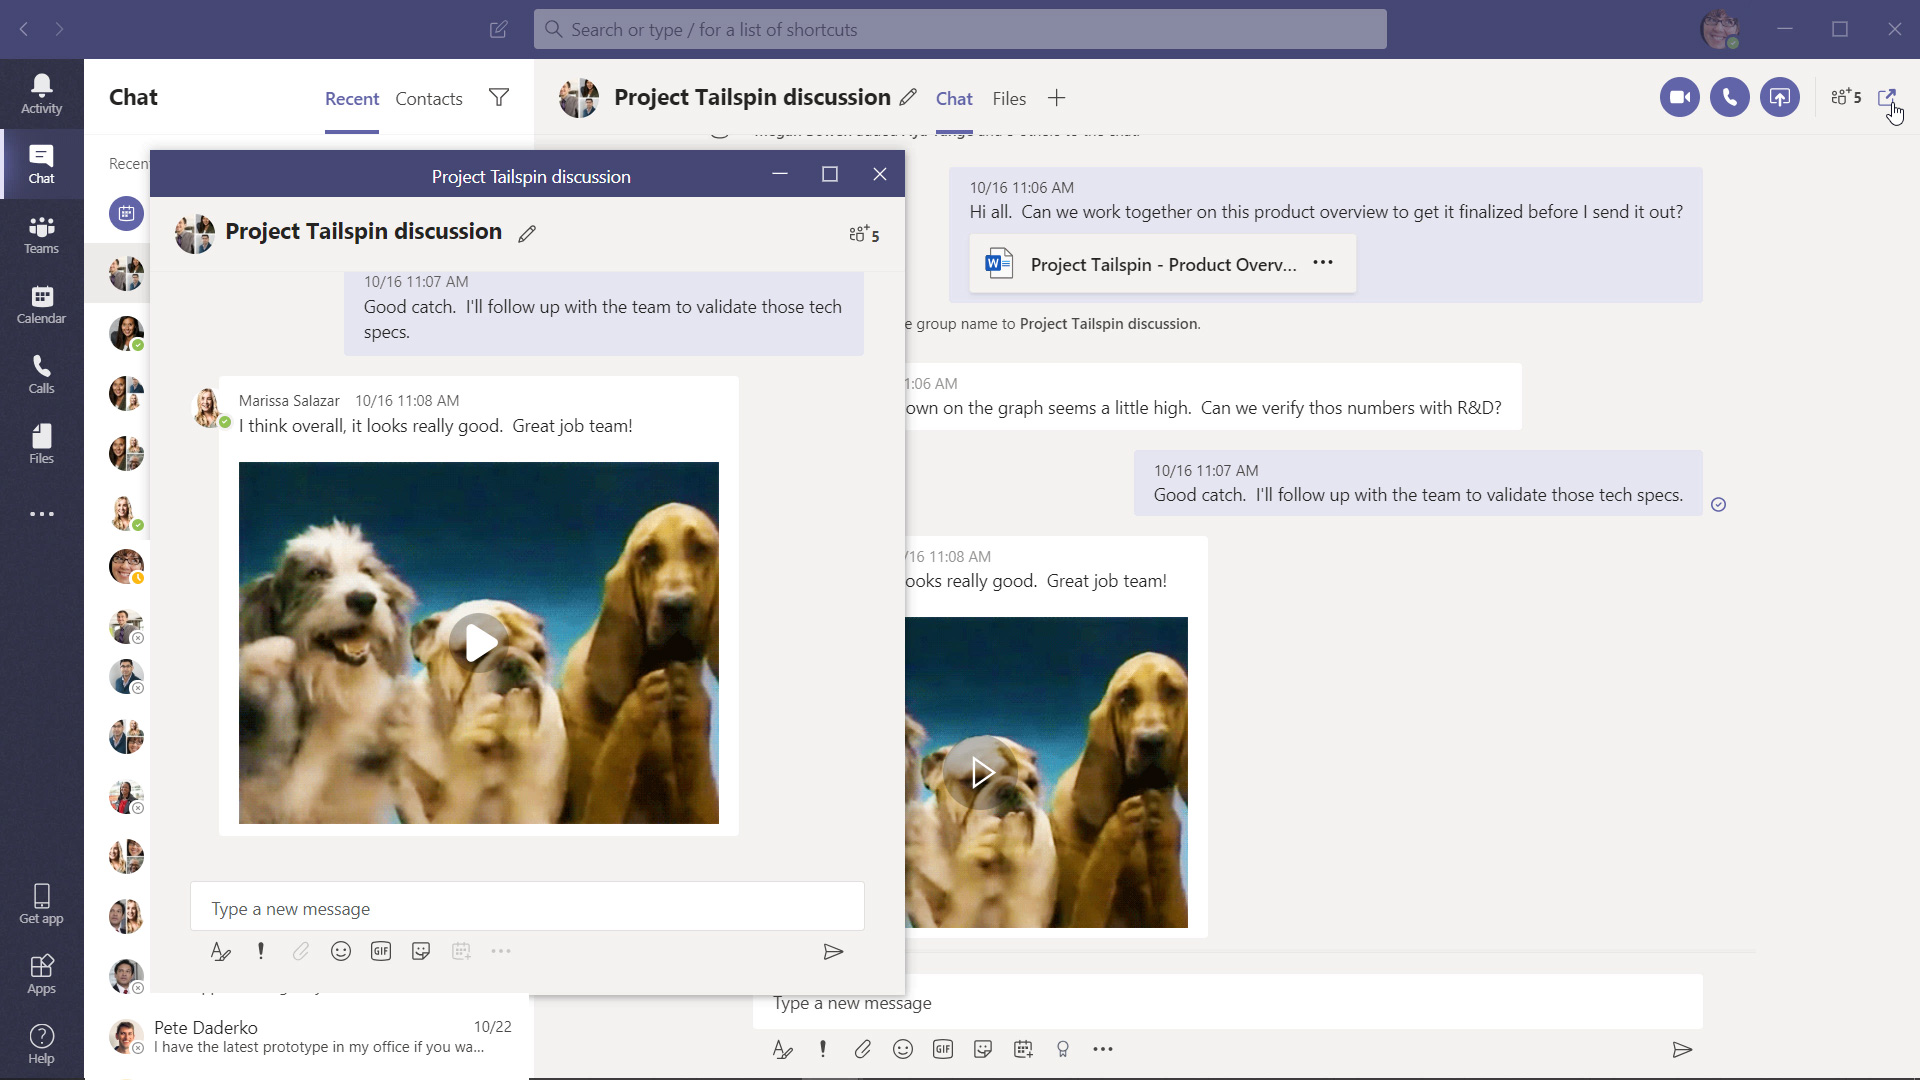 Microsoft Teams app interface